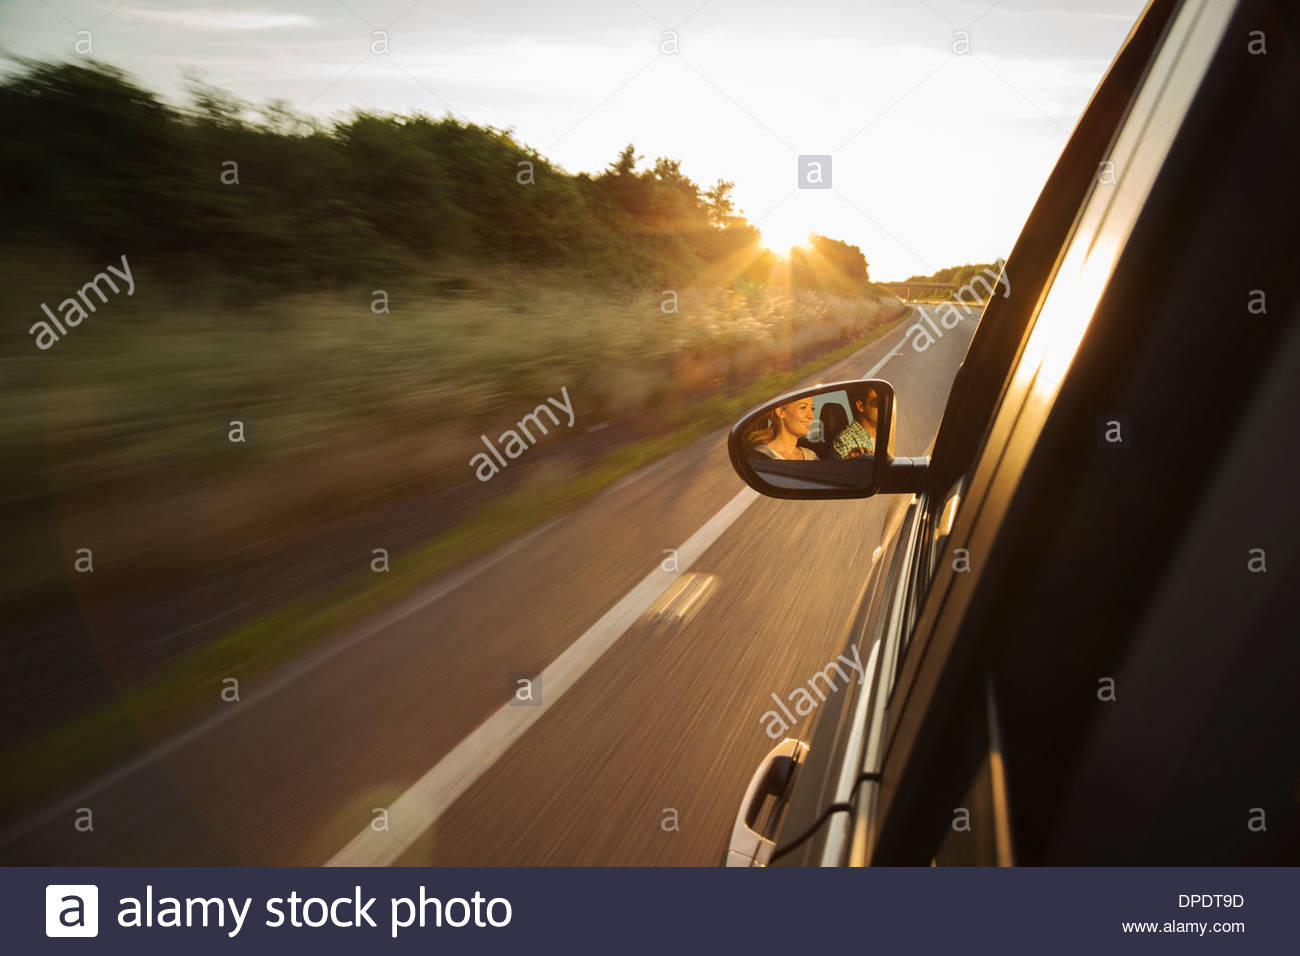 Car driving along road, reflection in wing mirror Stock Photo